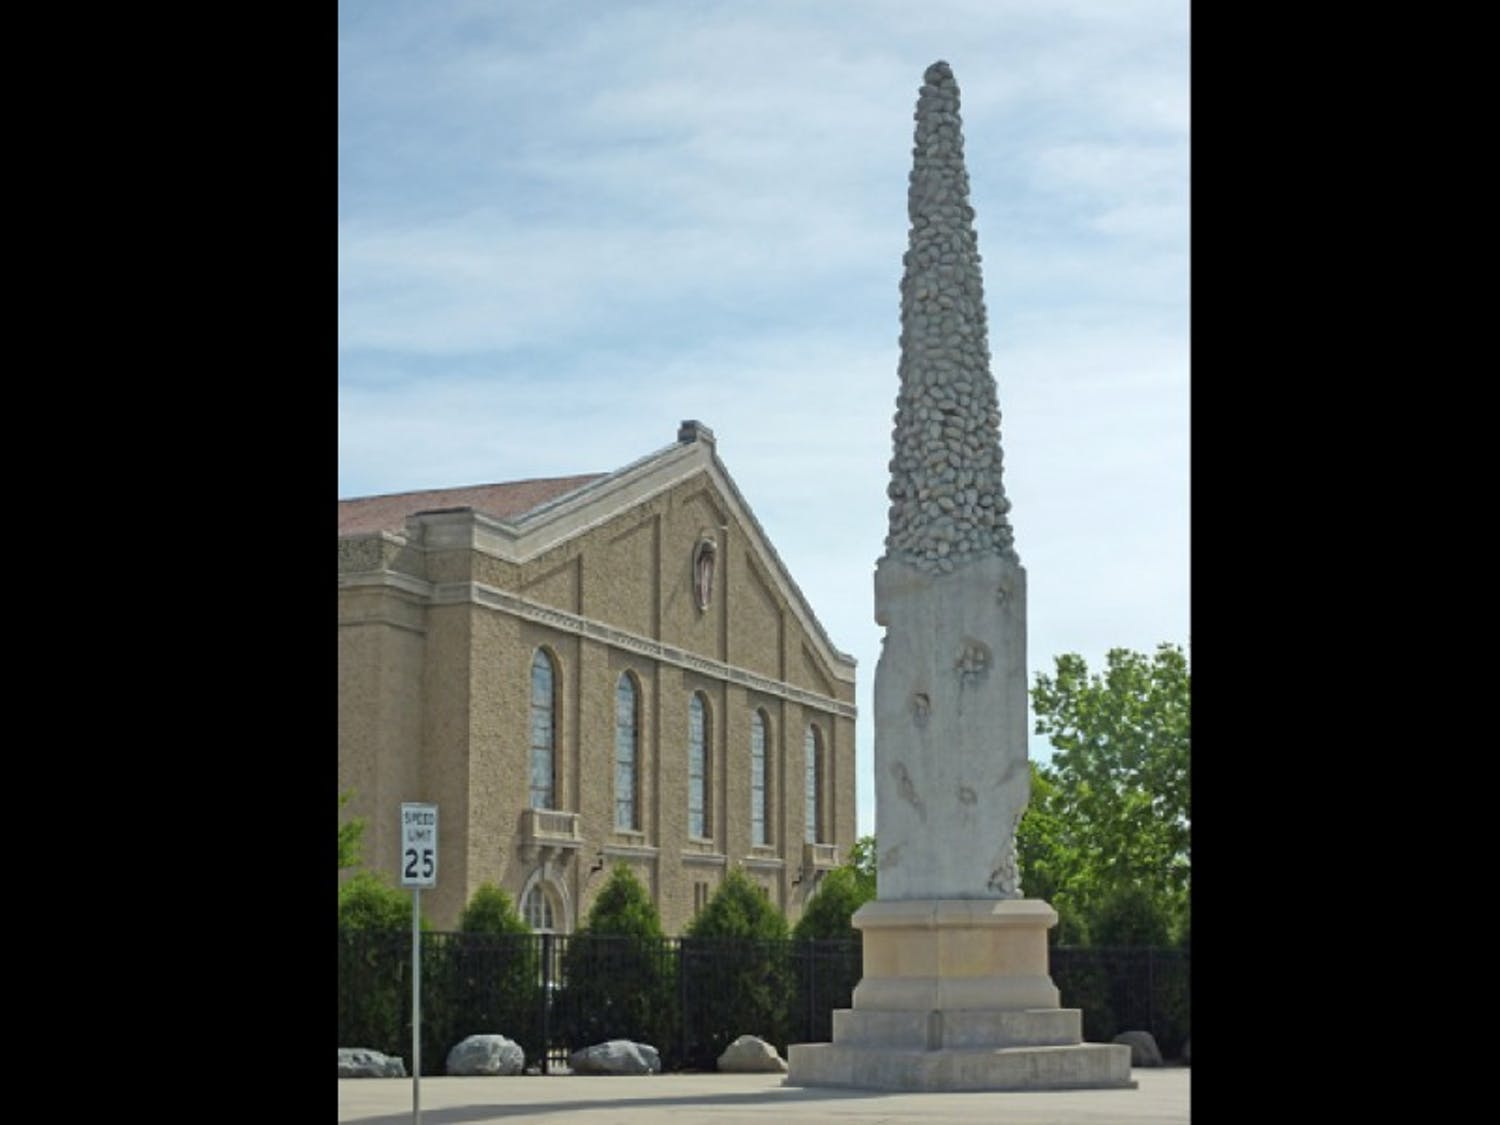 The Nails' Tales sculpture has stood outside Camp Randall since 2005, but now the campus landmark faces an unknown future.